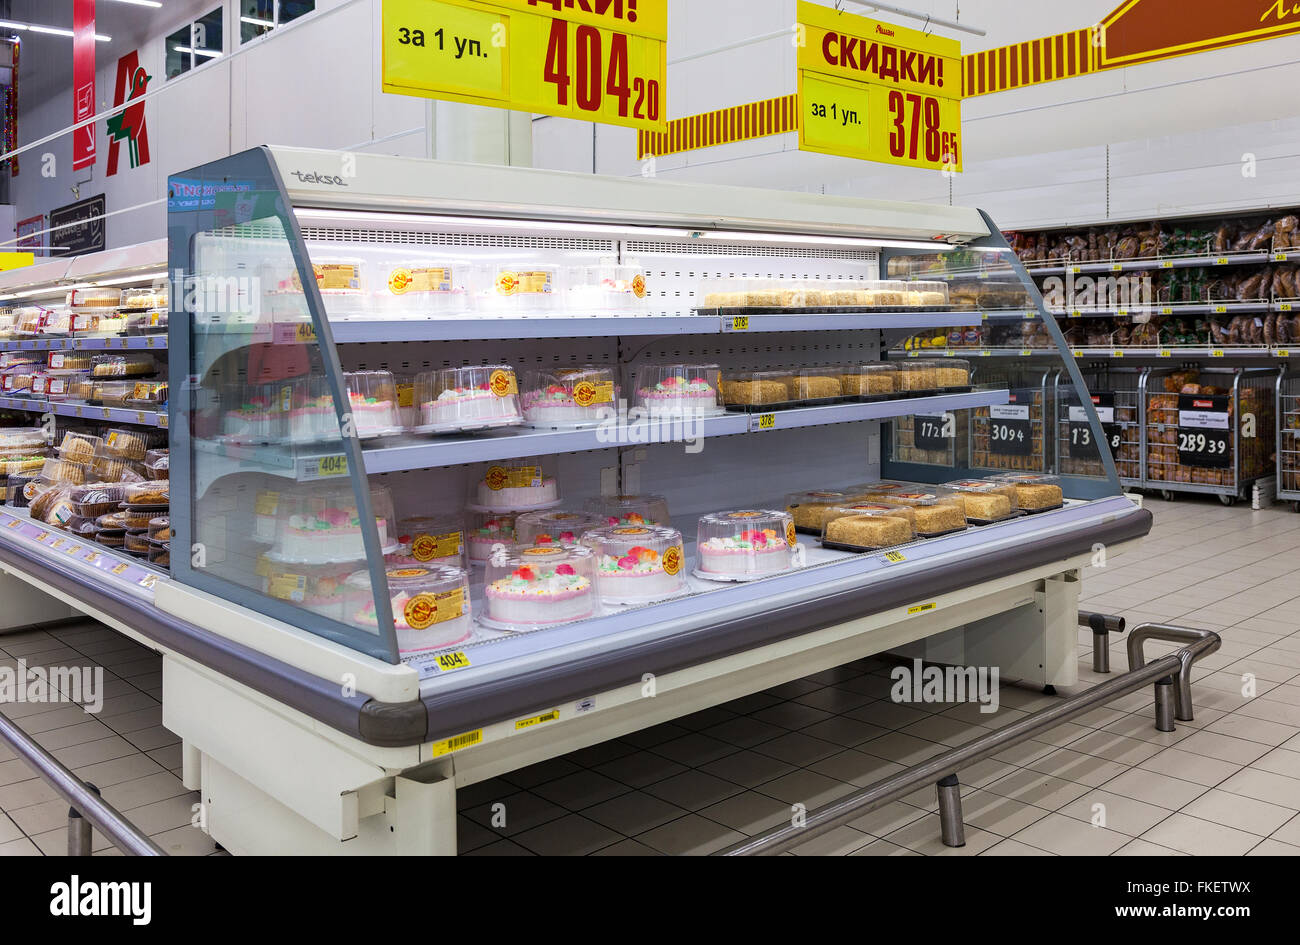 Showcase with sweet cakes ready to sale in hypermarket Auchan - Stock Image